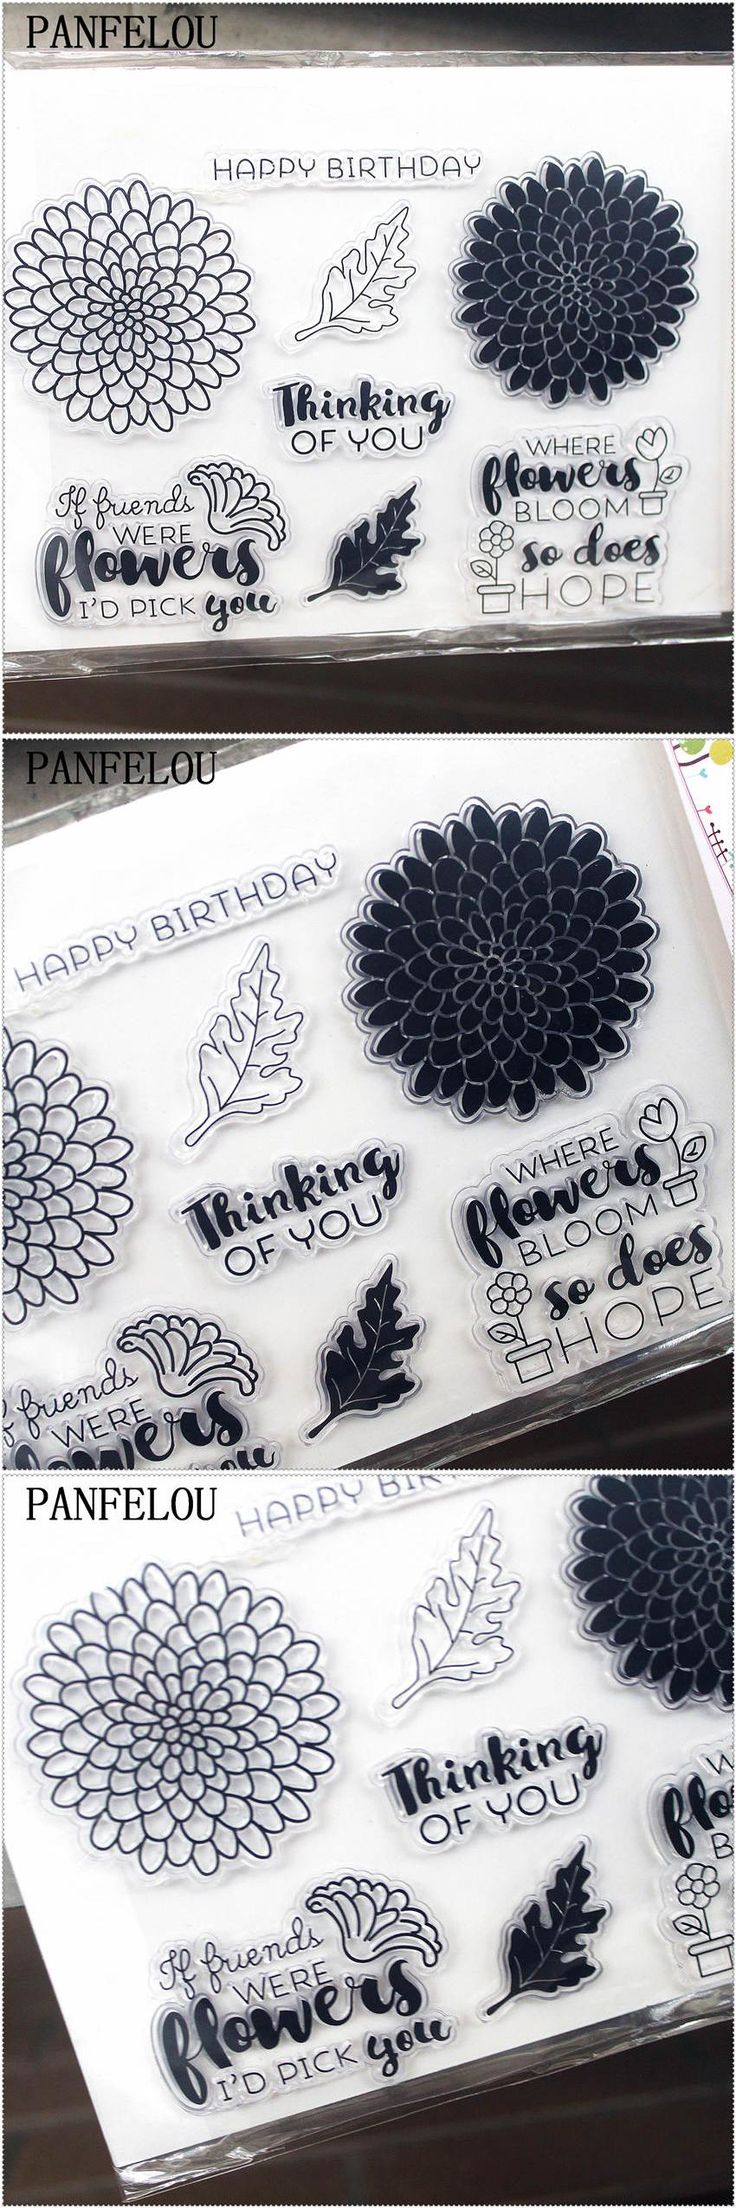 [Visit to Buy] PANFELOU 11.3*15.56cm Flowers leaf series Transparent Silicone Rubber Clear Stamps cartoon for Scrapbooking/DIY  wedding album #Advertisement